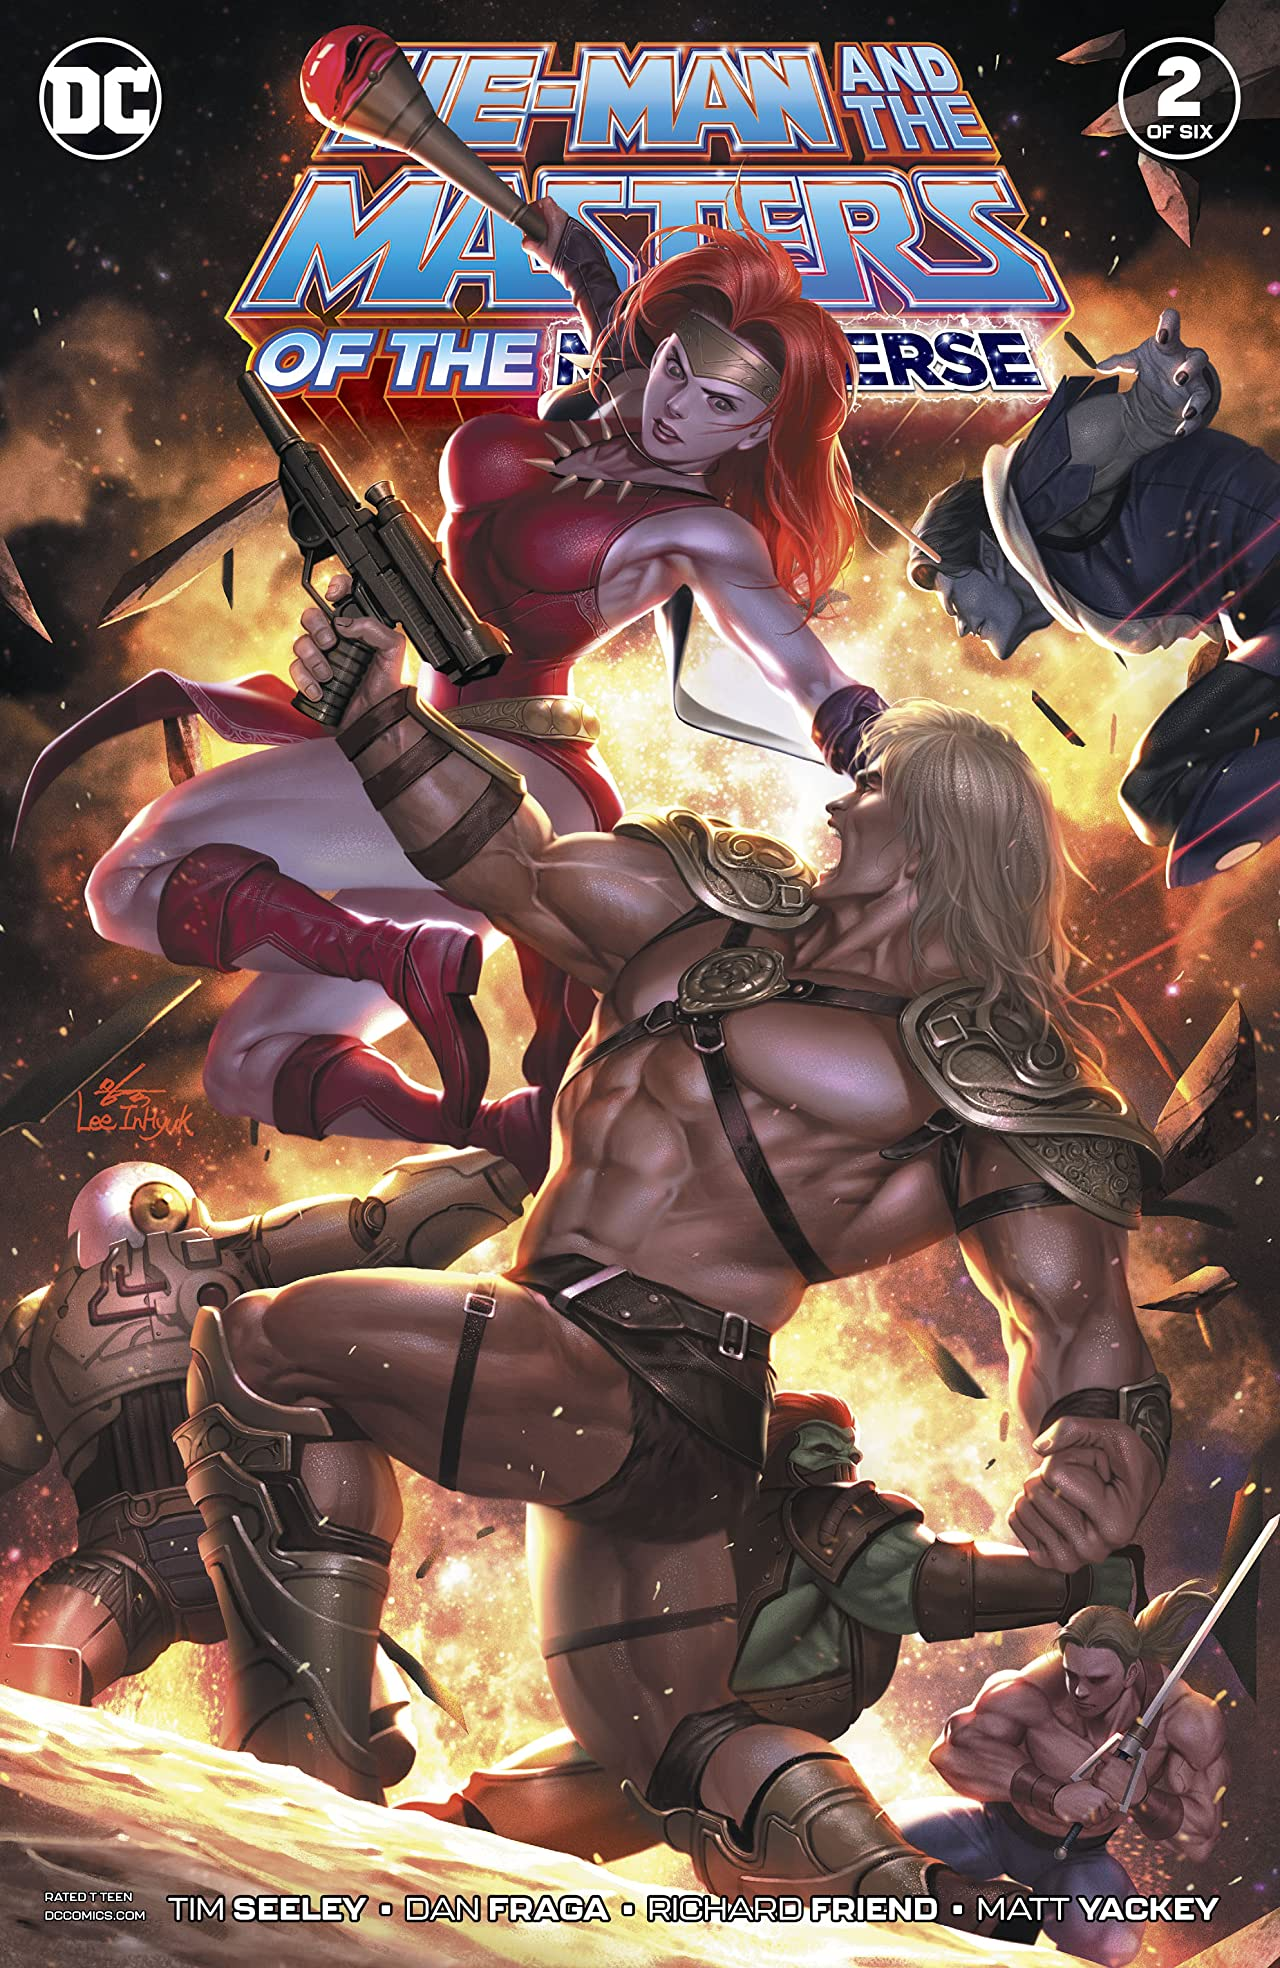 He-Man & the Masters of the Multiverse (2019-) #2